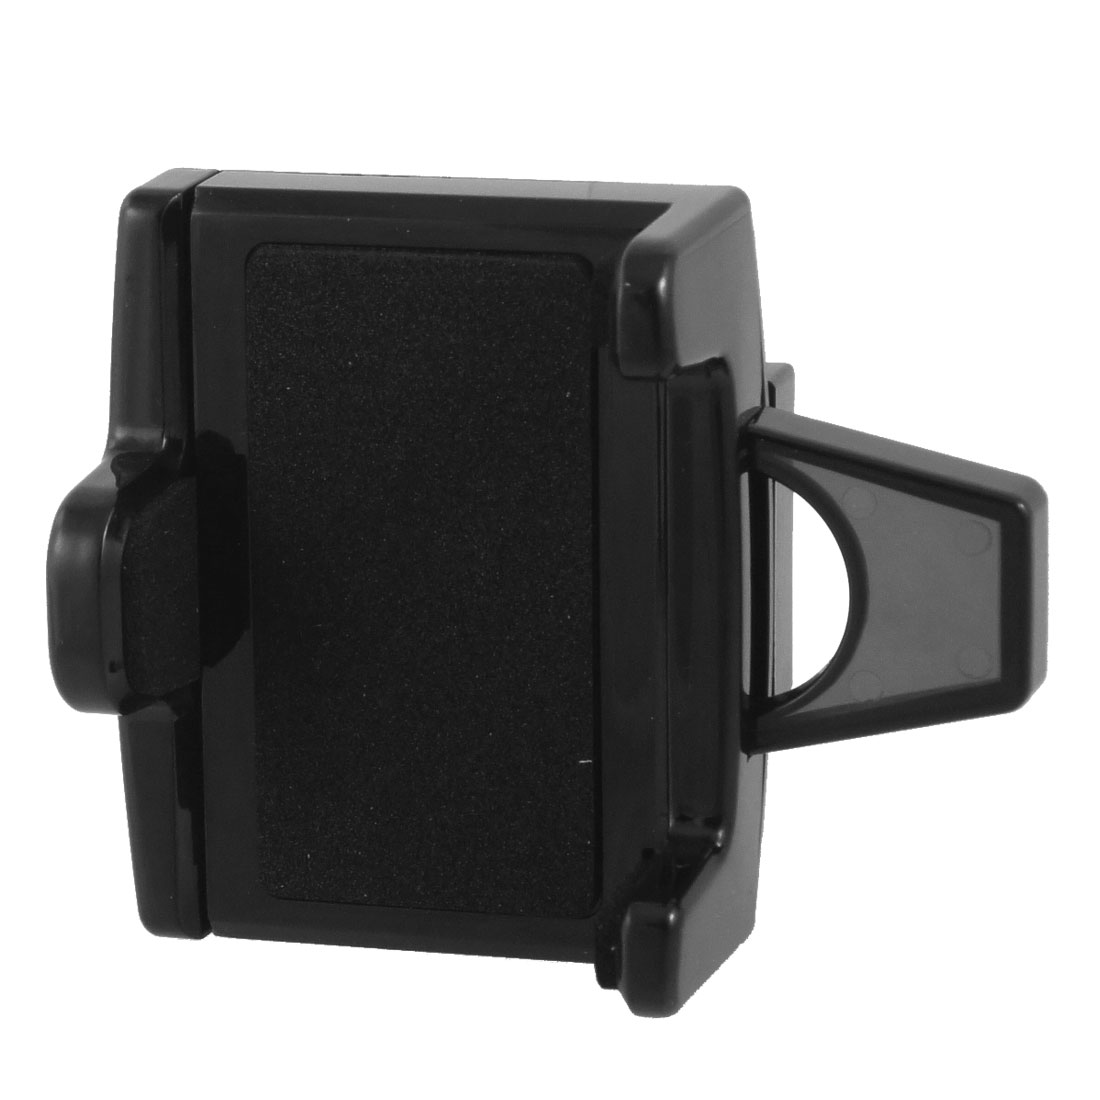 Car Auto Black Plastic Holder Bracket for Mobile Phone GPS